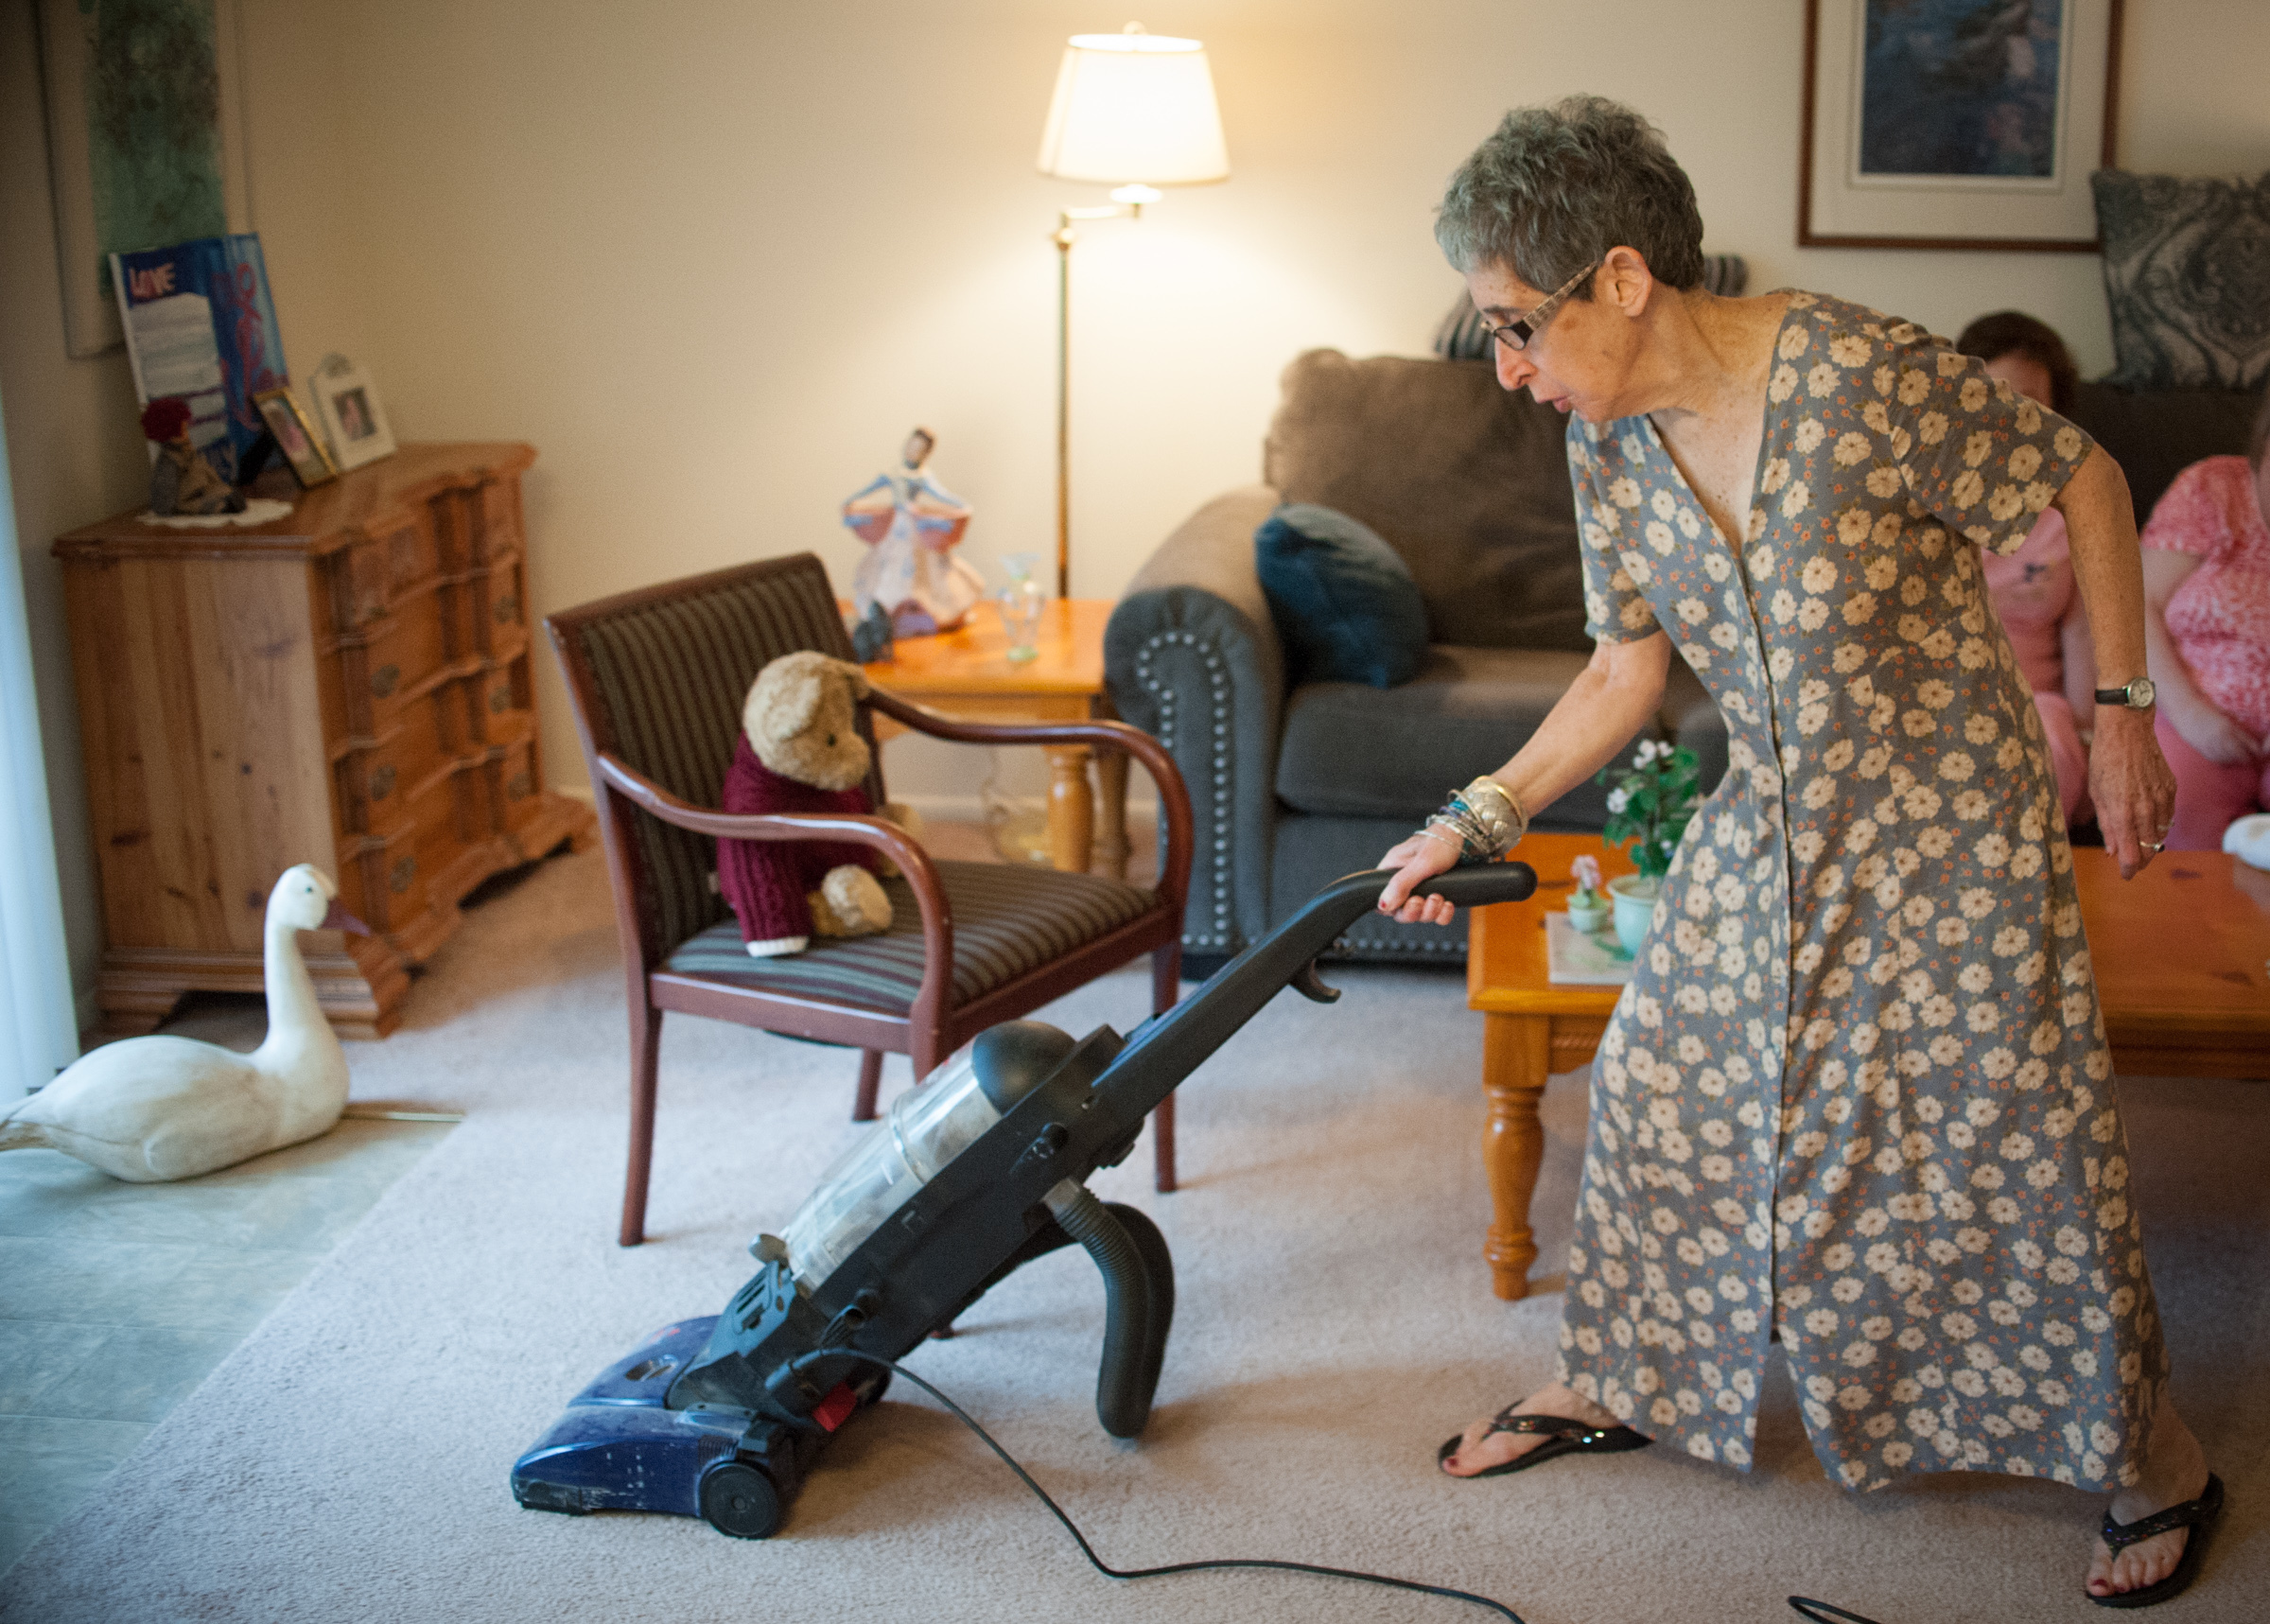 Harriet, 62, vacuums in her living room, August 7th, 2017. CAMERON B. POLLACK / Staff Photographer